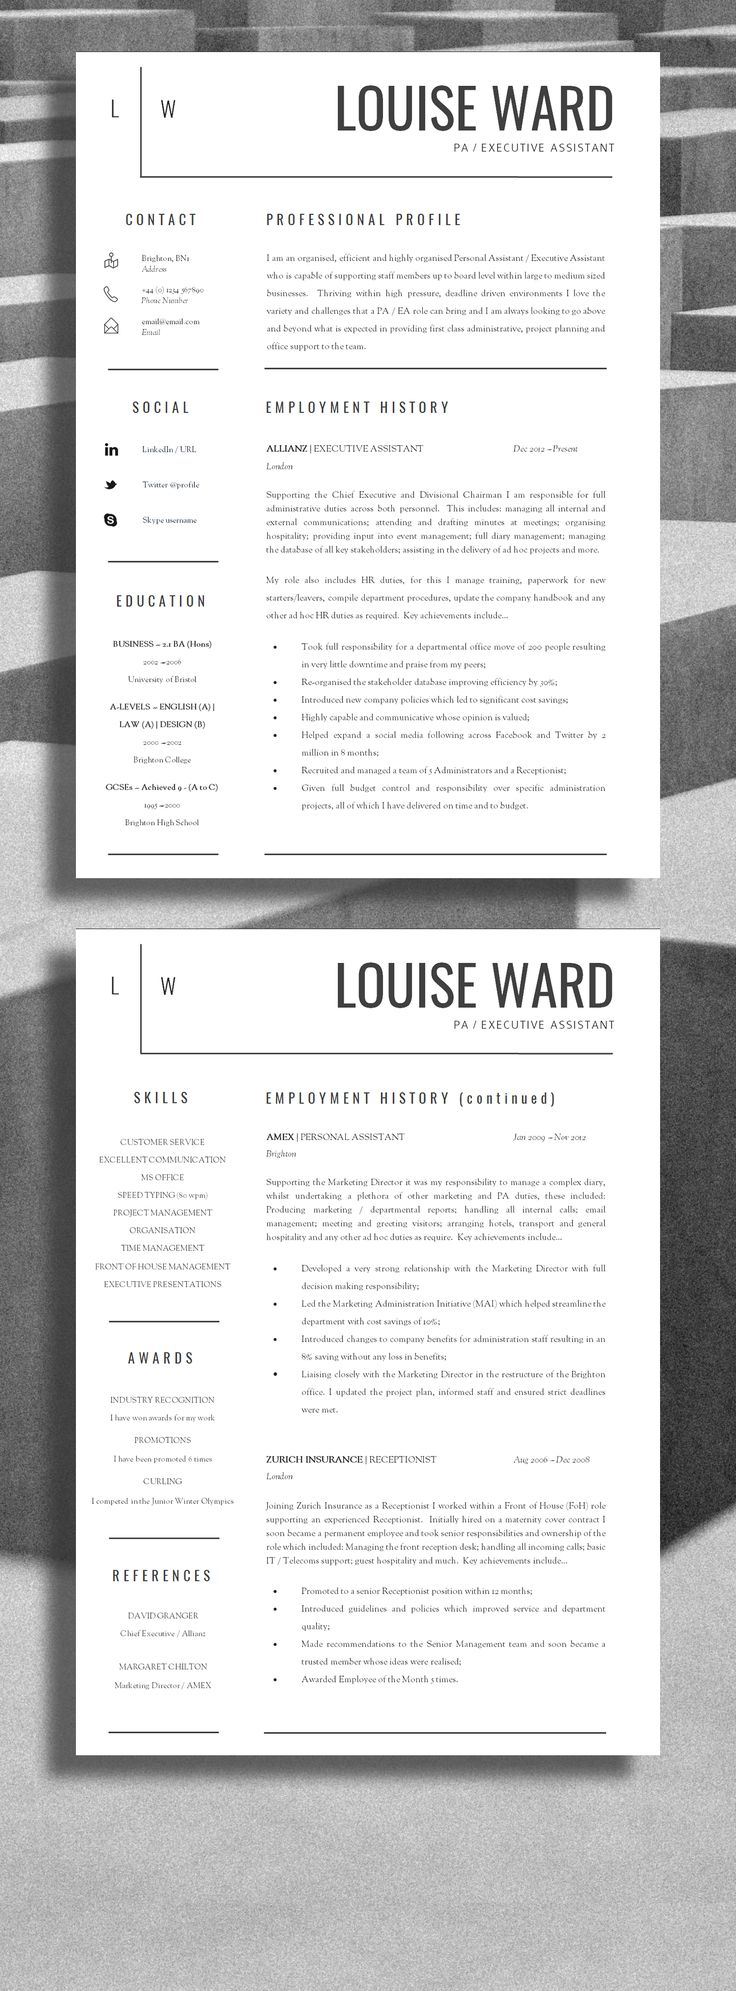 High Quality Professional Resume Design / Professional CV Design   Be Professional And  Get More Interviews #Career